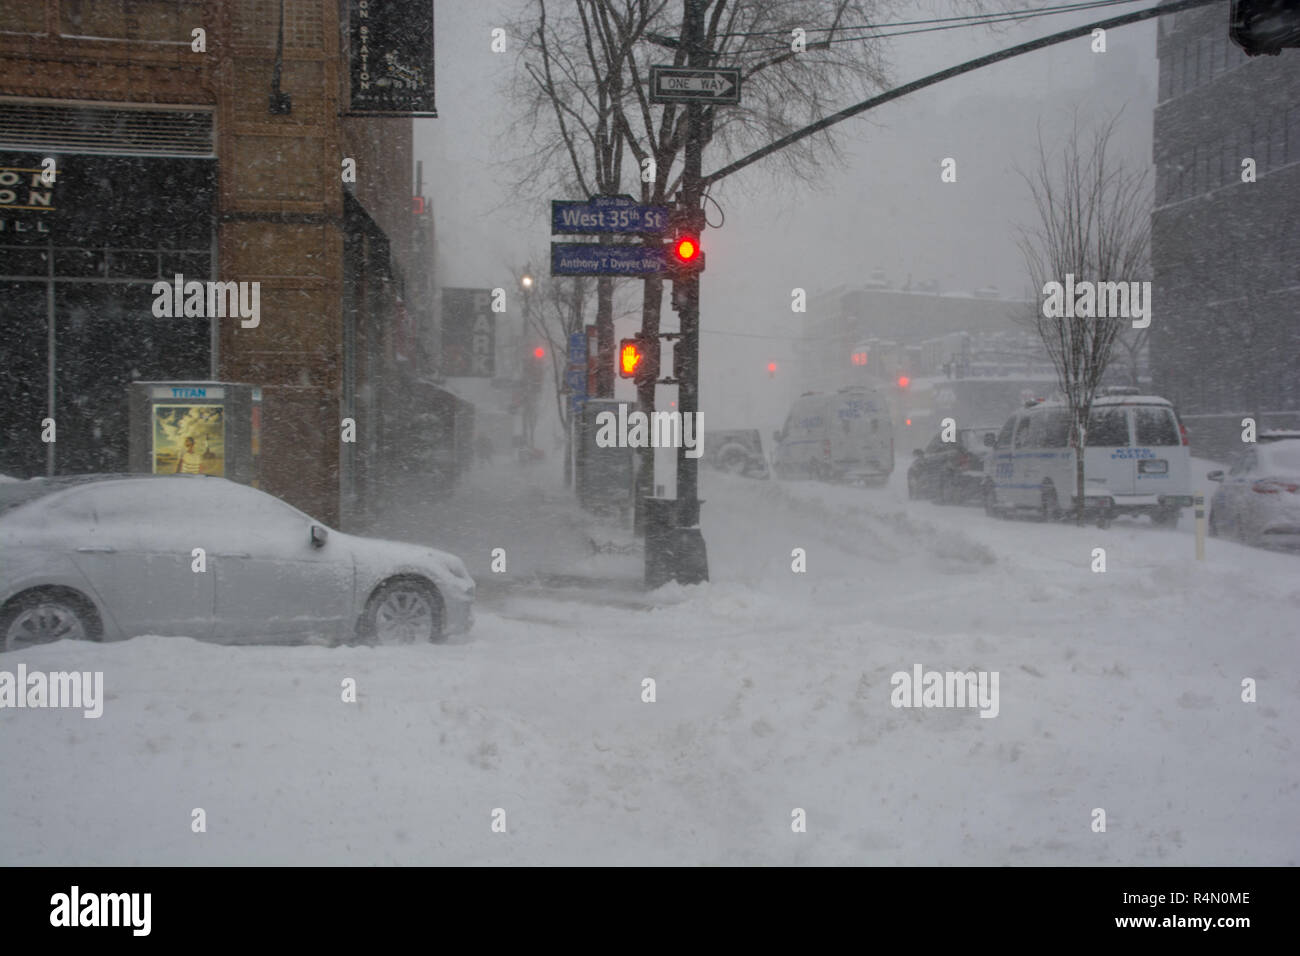 New York City streets in the blizzard of 23rd January 2016 with heavy snowfall and no traffic and snow covered car - Stock Image